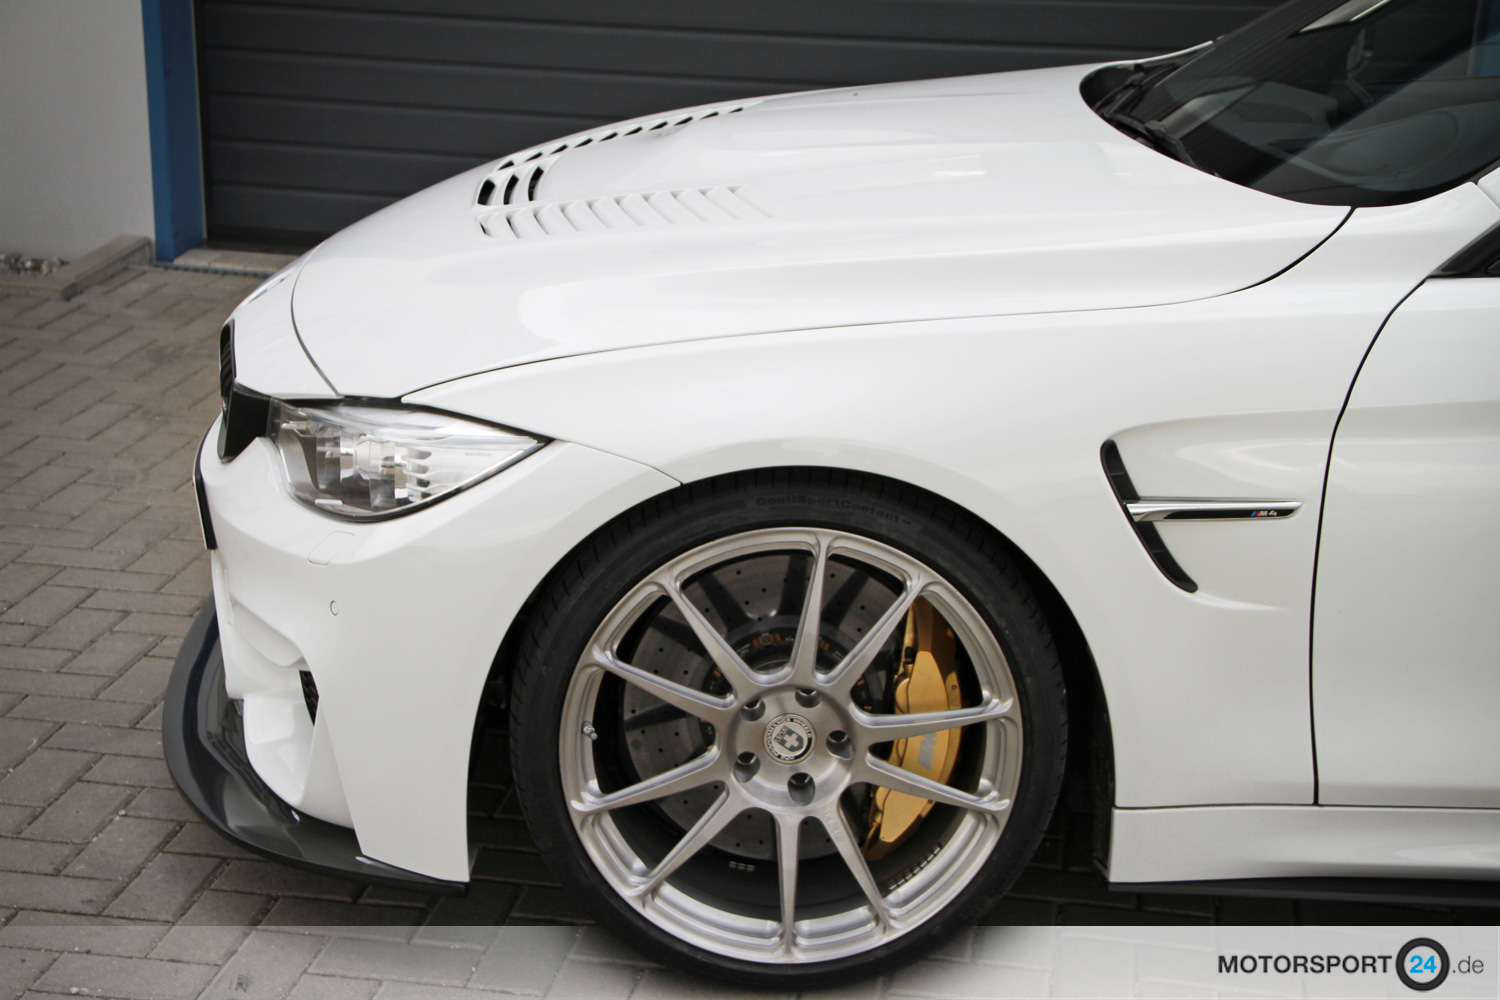 bmw m4 tuning 419 23 kw 570 ps sind erreicht bmw m. Black Bedroom Furniture Sets. Home Design Ideas